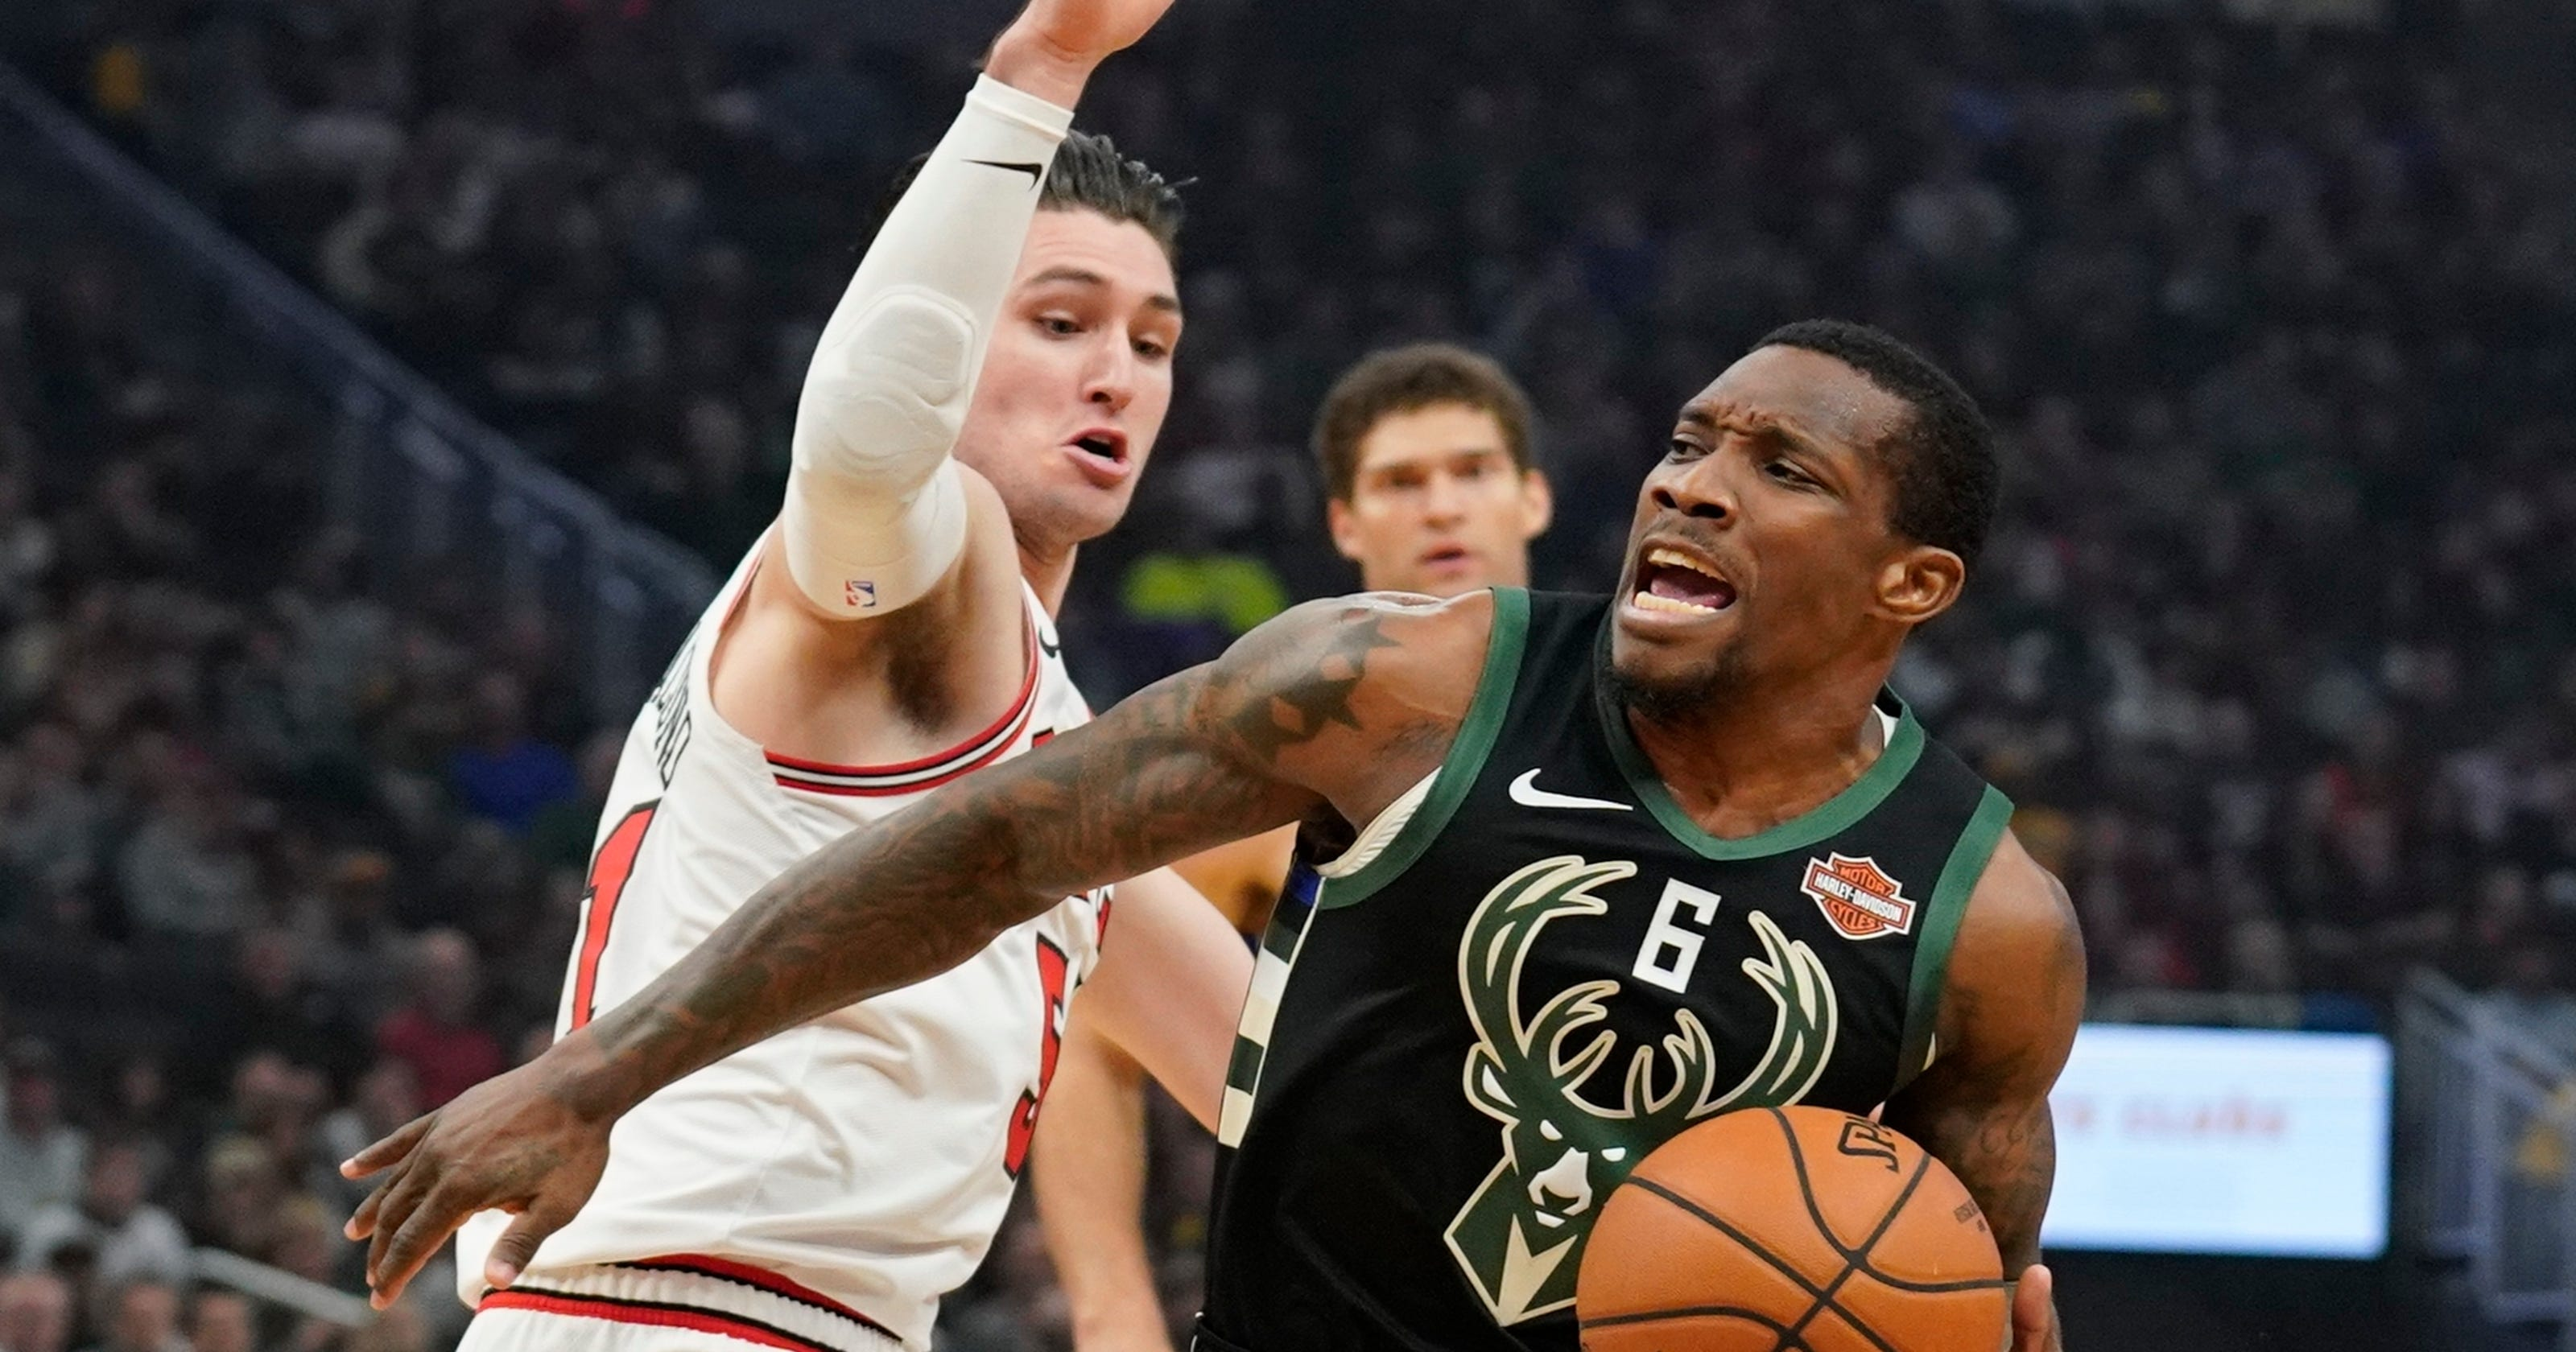 Bucks 123, Bulls 104 46-point outburst turns game around